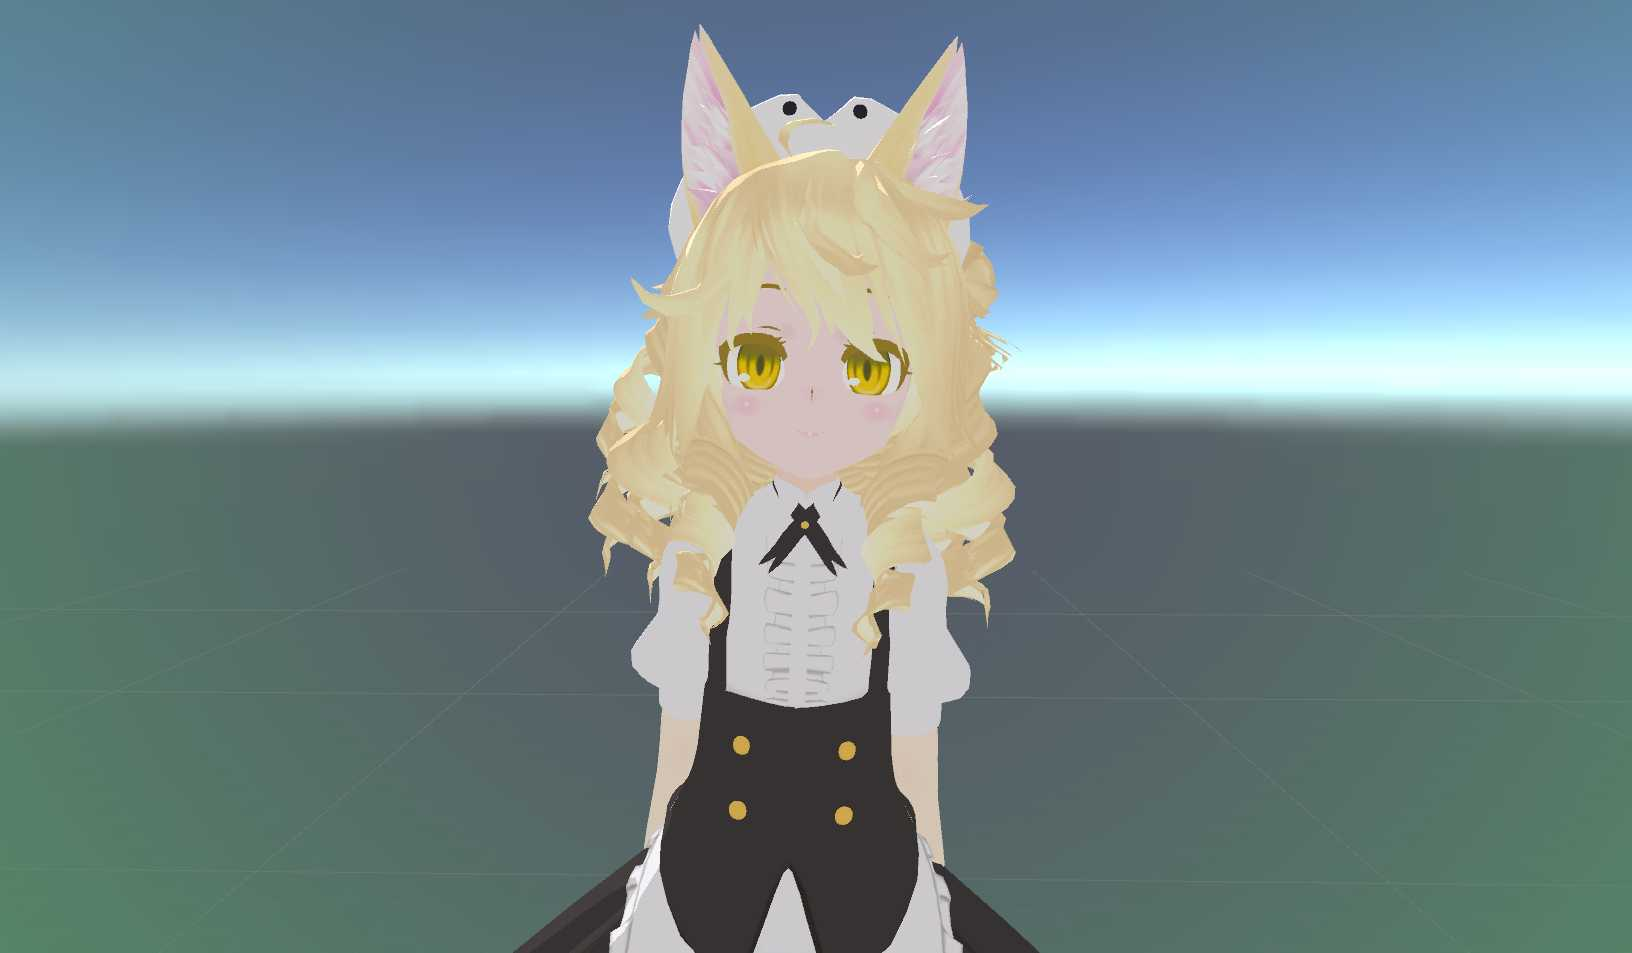 VRCMods - Maid Miko (Dynamic Bones, Eye Tracking, Gestures, Voice